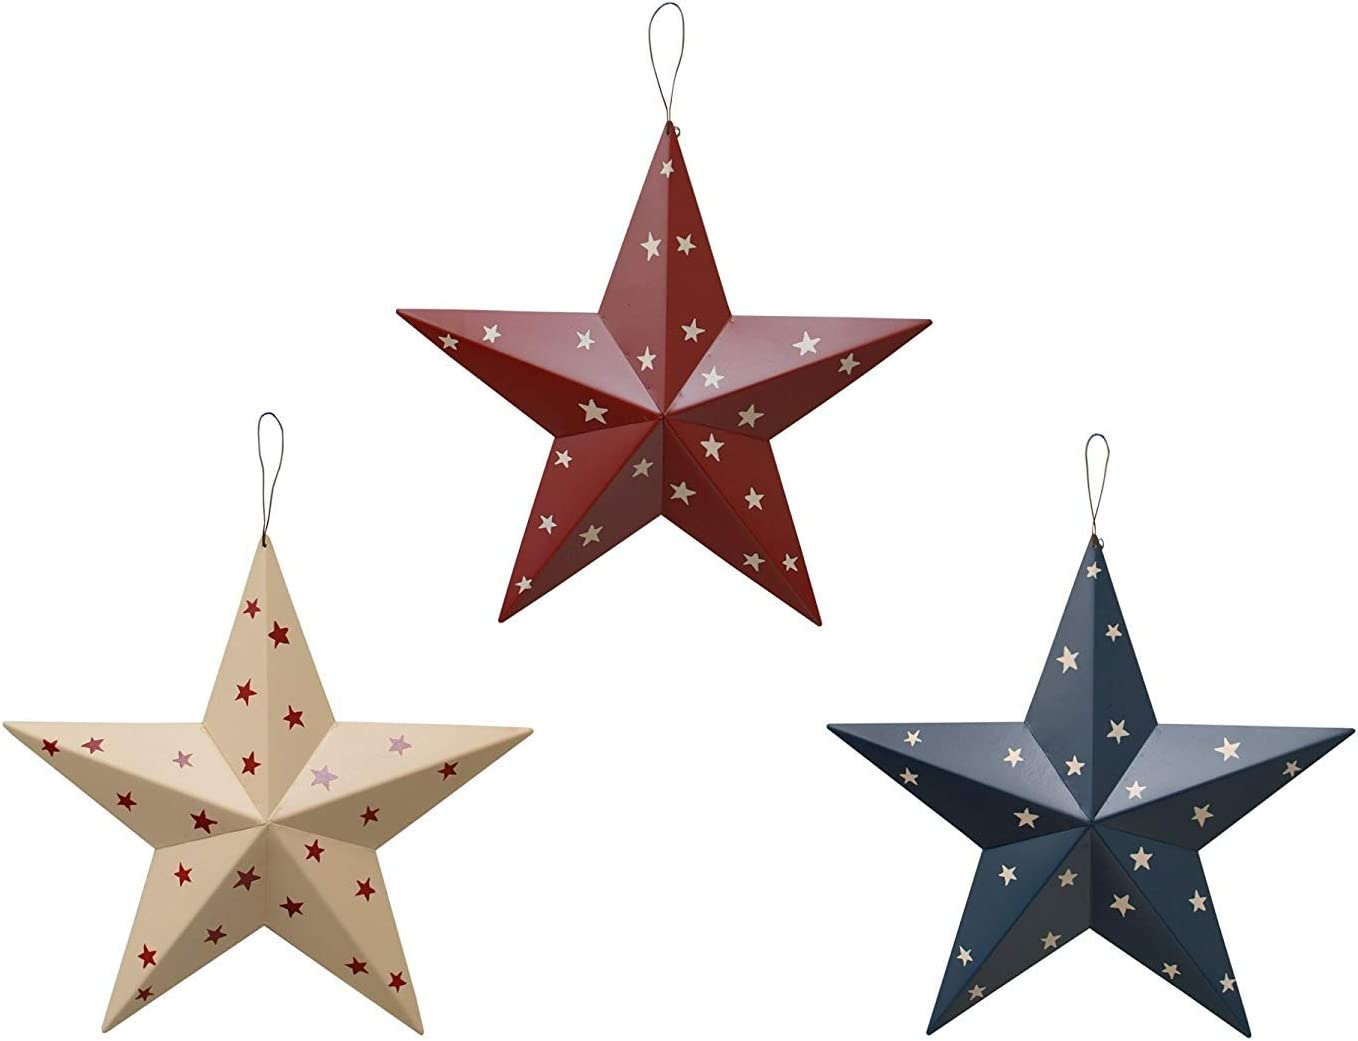 YUMBOR Rainbow Handcrafts Rustic Metal 3D Barn Star Patriotic Wall Decor Americana Star July 4th Country Americana Patriotic Wall Ornament,Outdoor Decoration Set of 3 (Blue/Red/Beige)